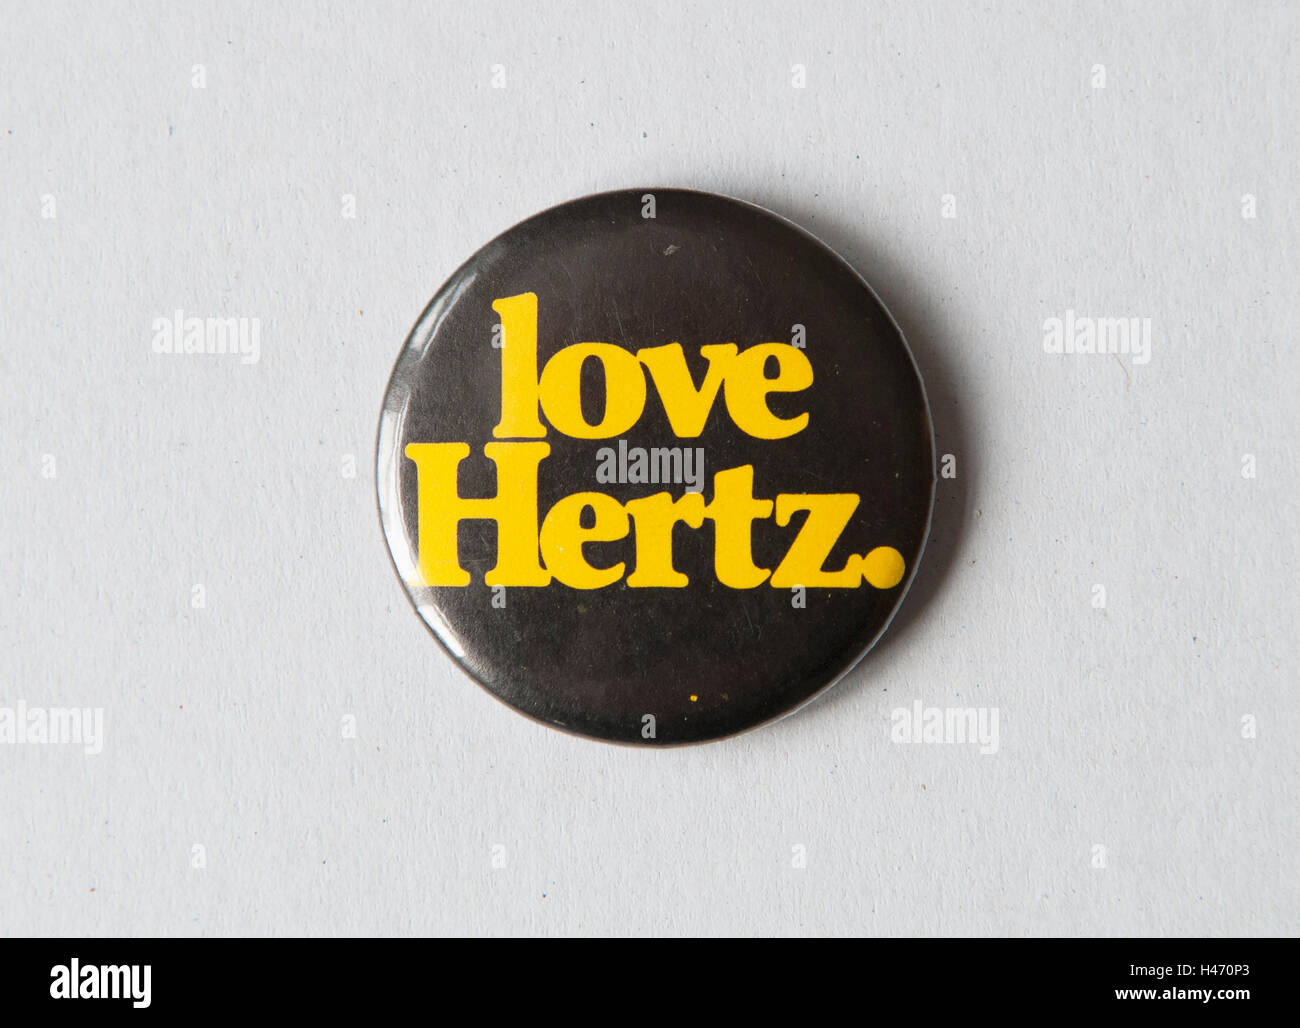 Hertz rental cars, badge collected at car hire 1980s or 1970s 'Love Hertz' HOMER SYKES - Stock Image